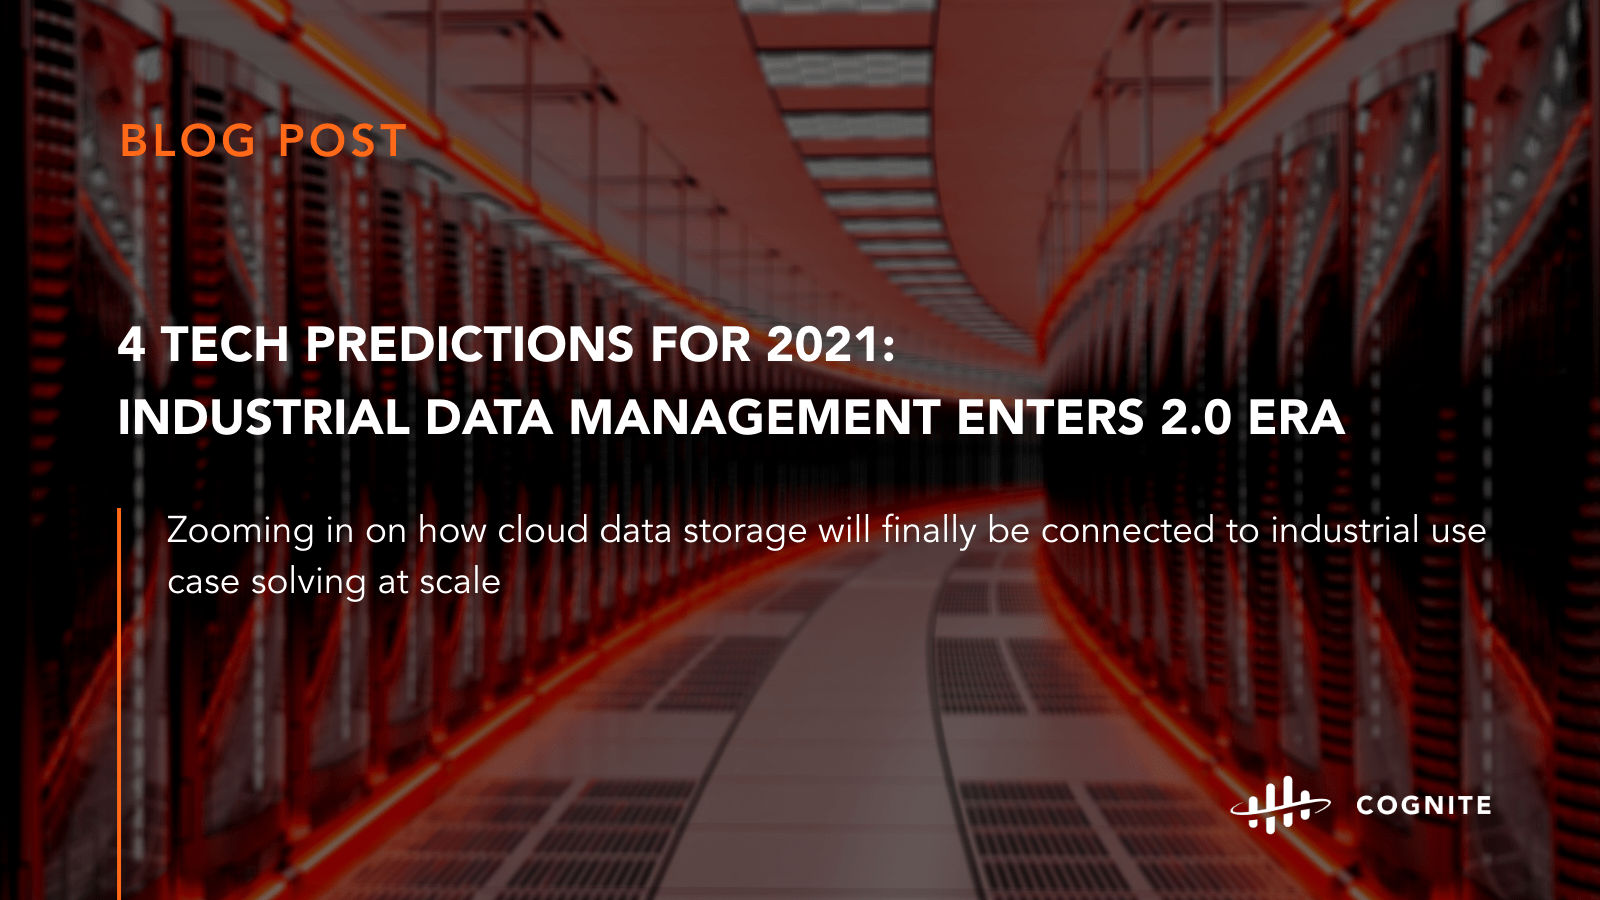 4 Tech Predictions For 2021: Industrial Data Management Enters 2.0 Era